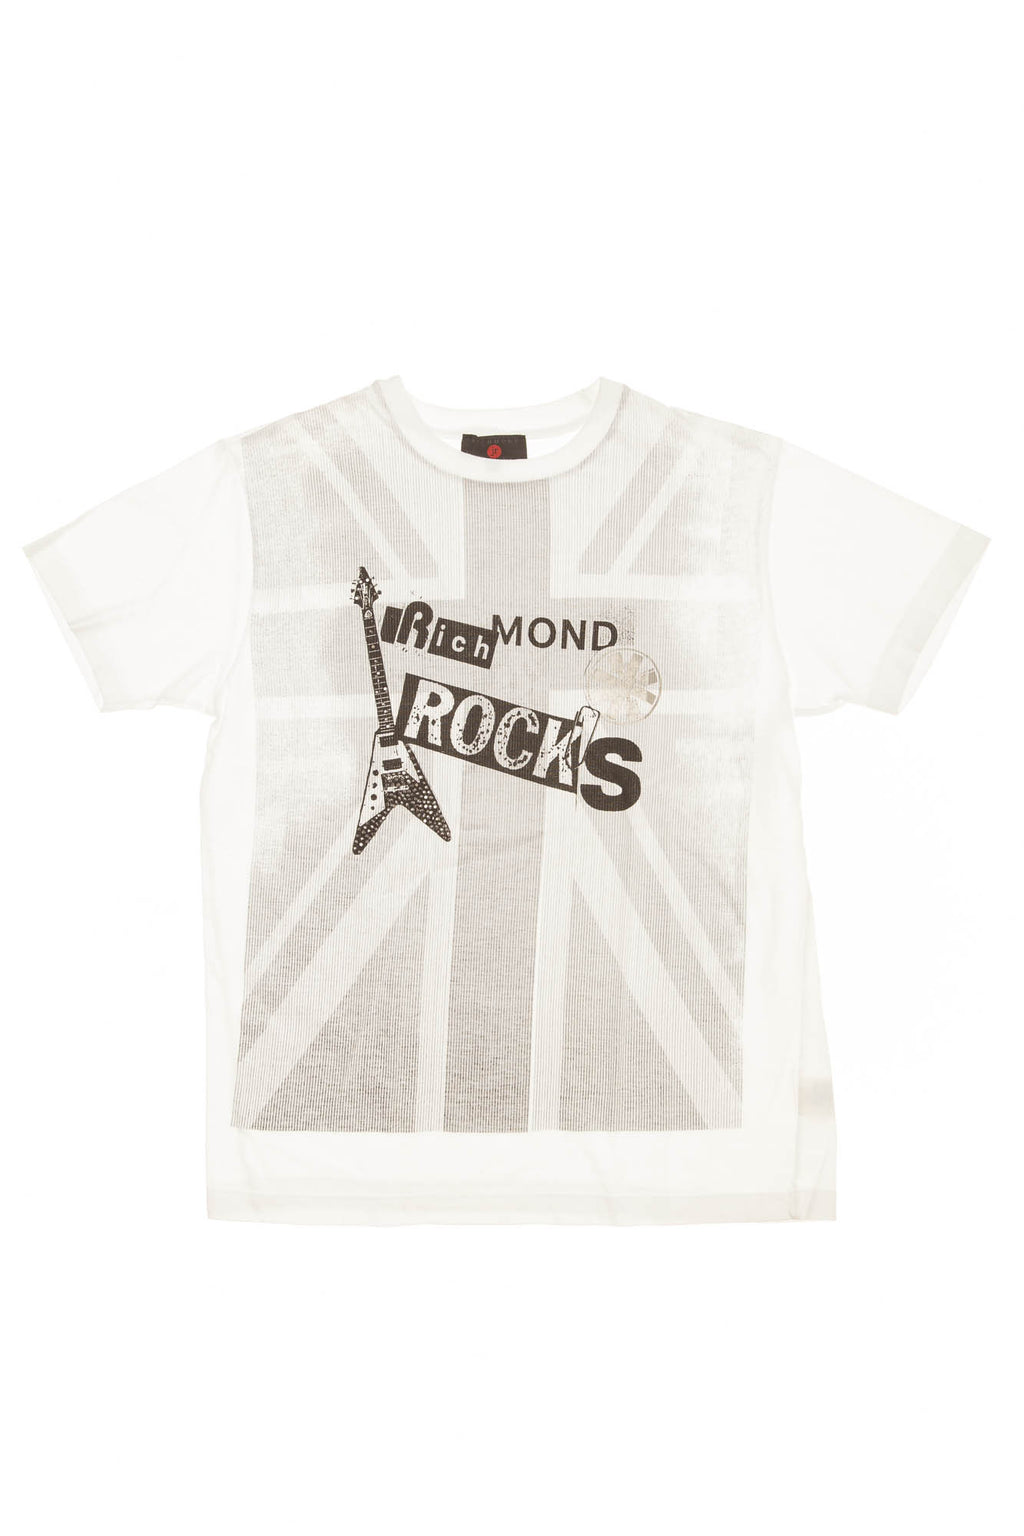 Richmond JR - White & Gray Short Sleeve Striped Shirt - 40